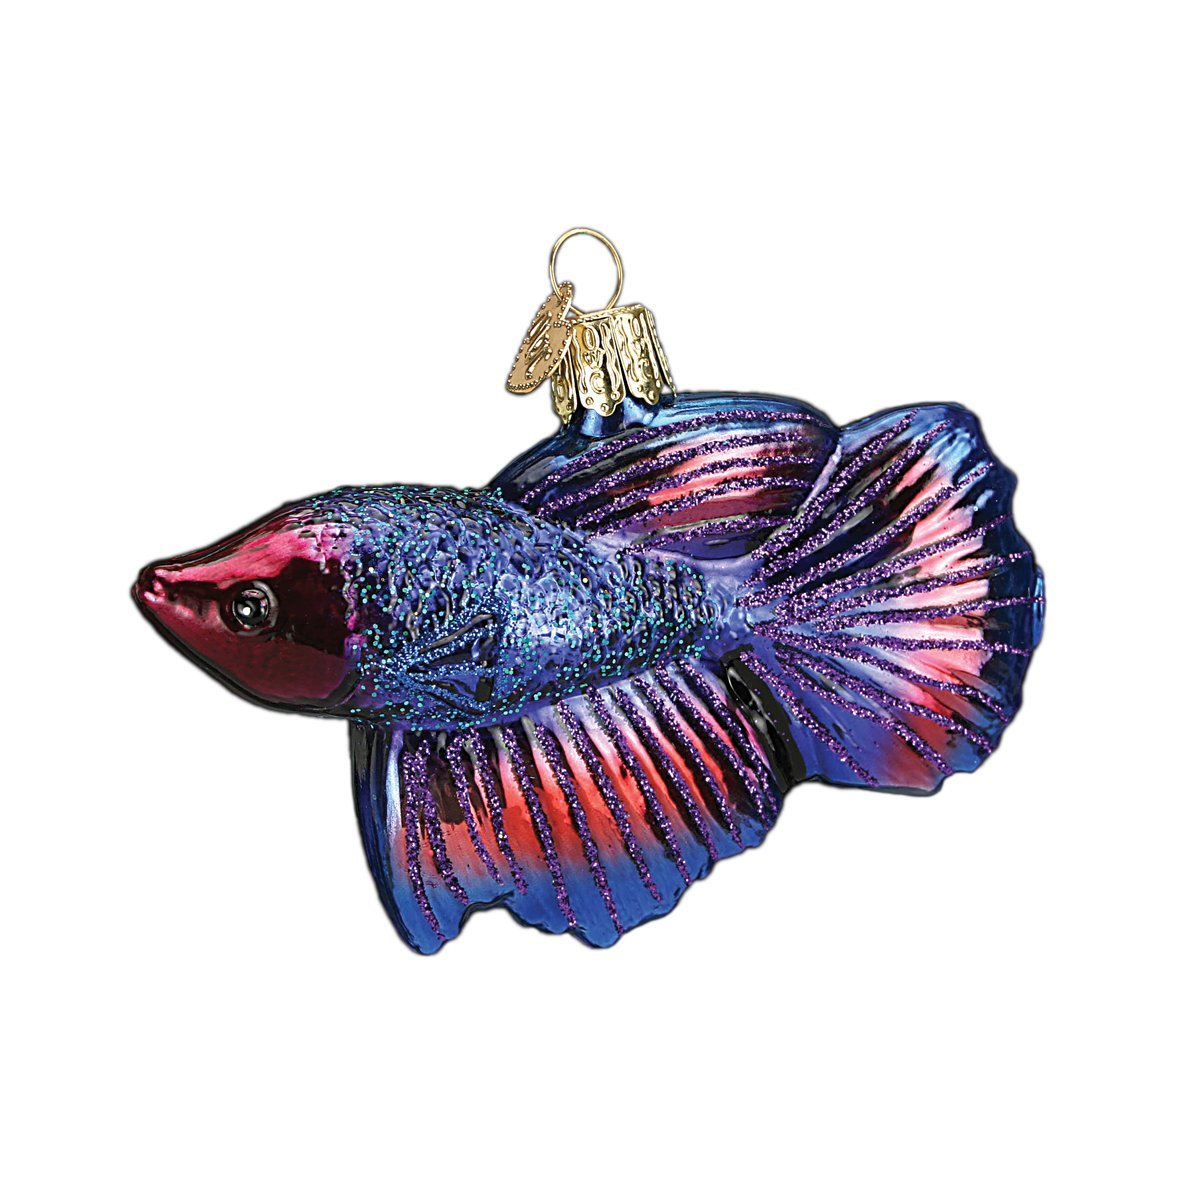 Old World Christmas Ornaments: Betta Fish Glass Blown Ornaments for Christmas Tree